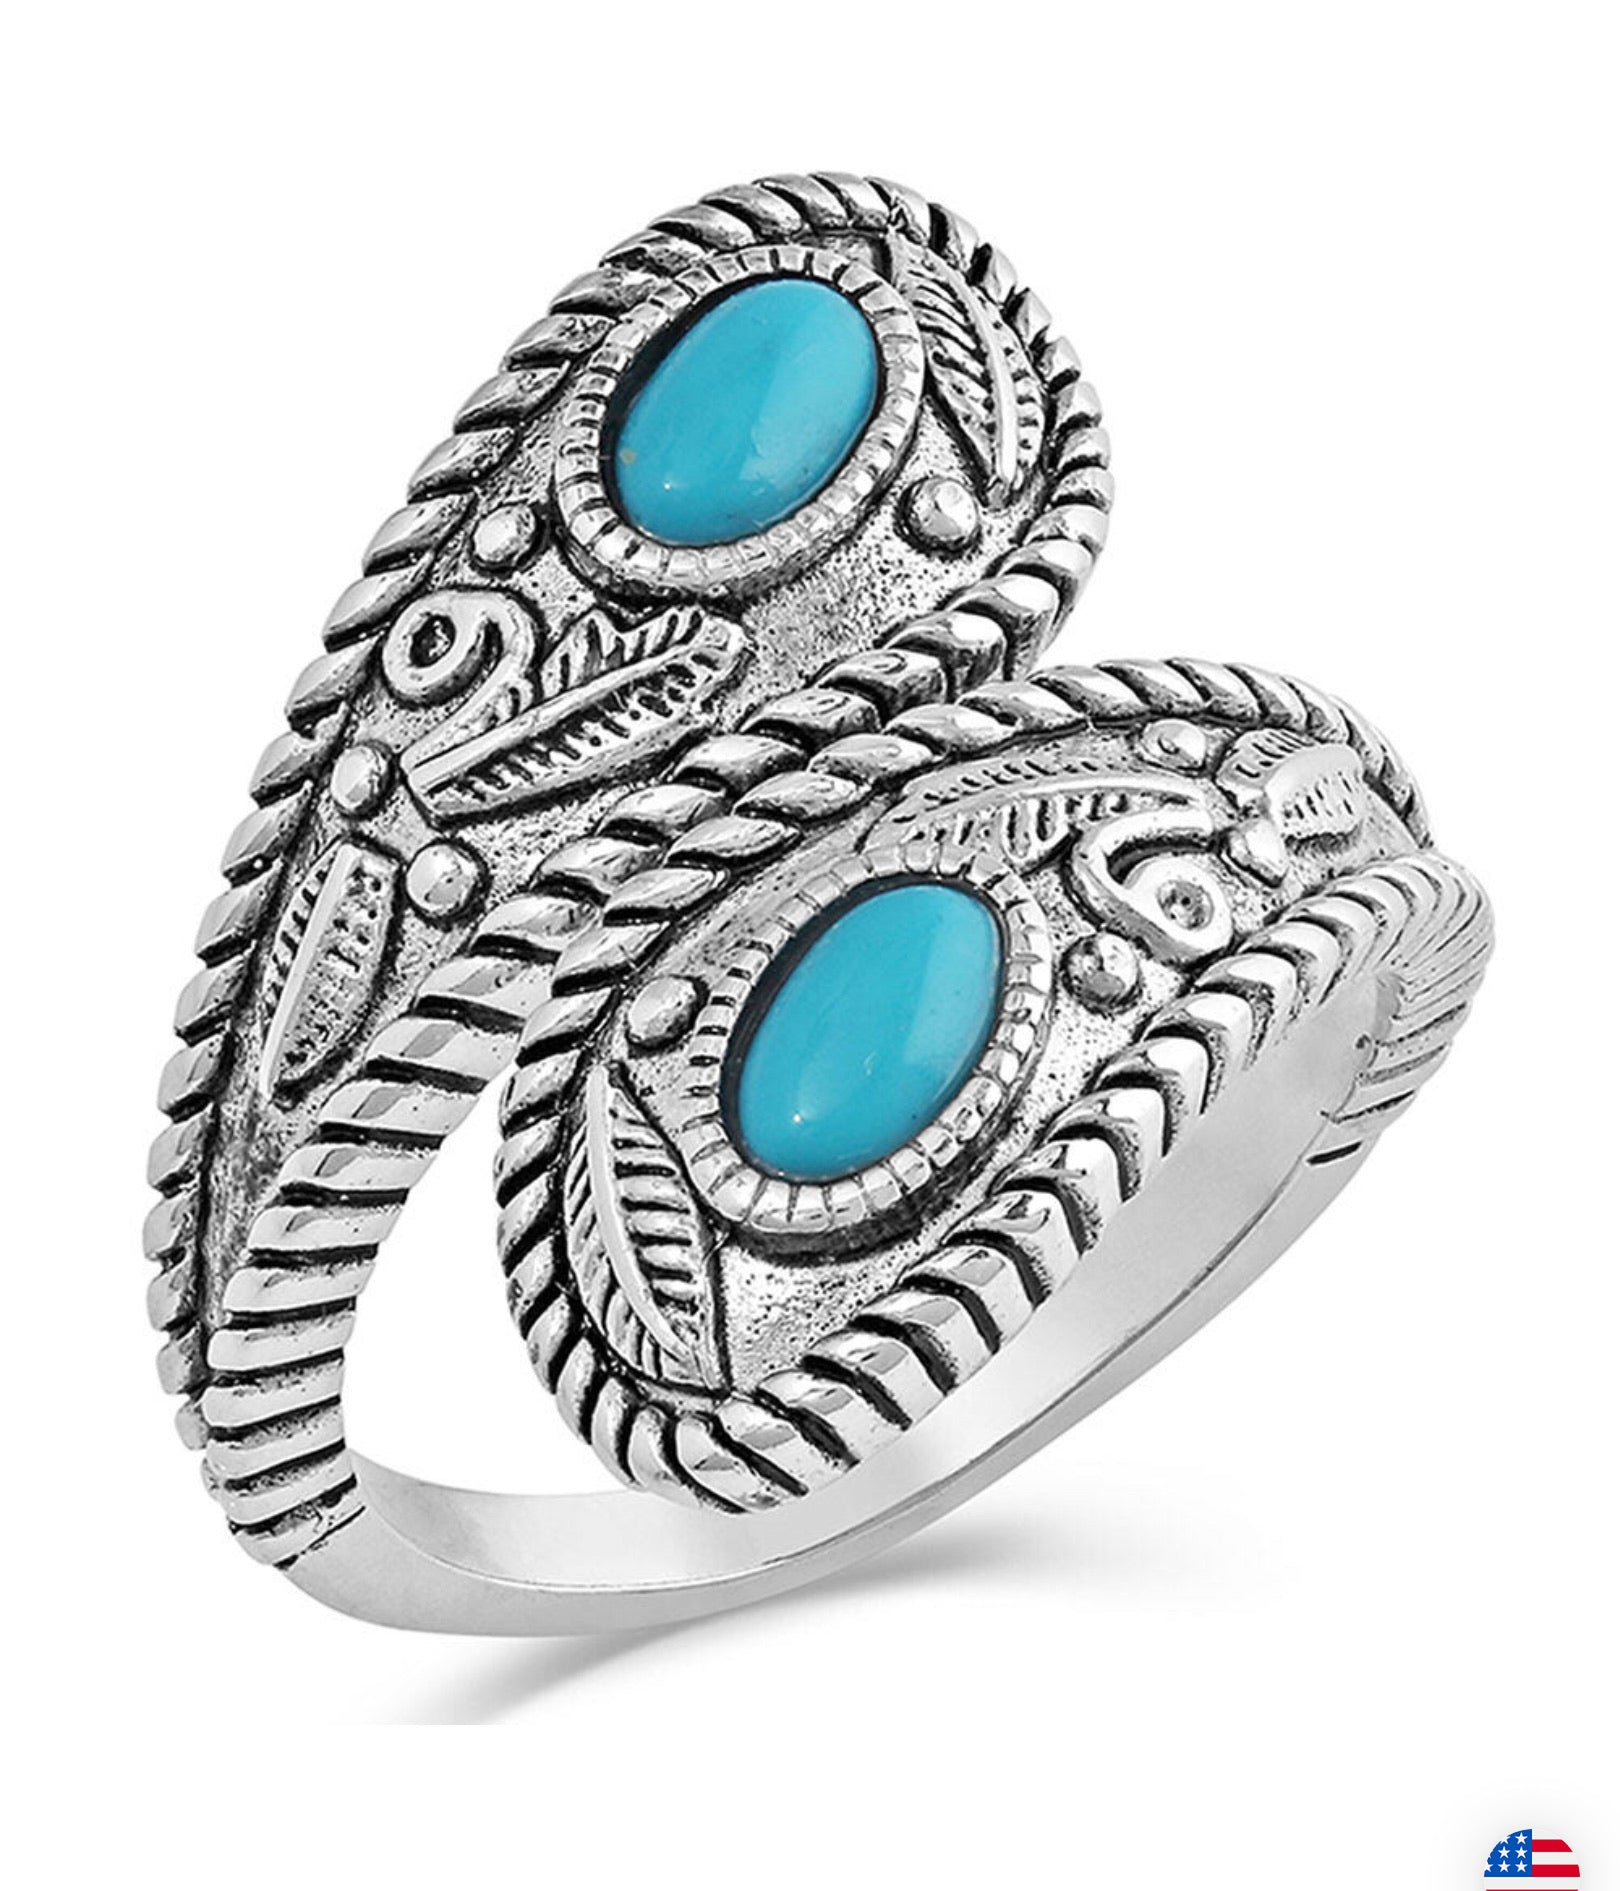 Montana Silversmiths Balancing The Whole Turquoise Open Ring